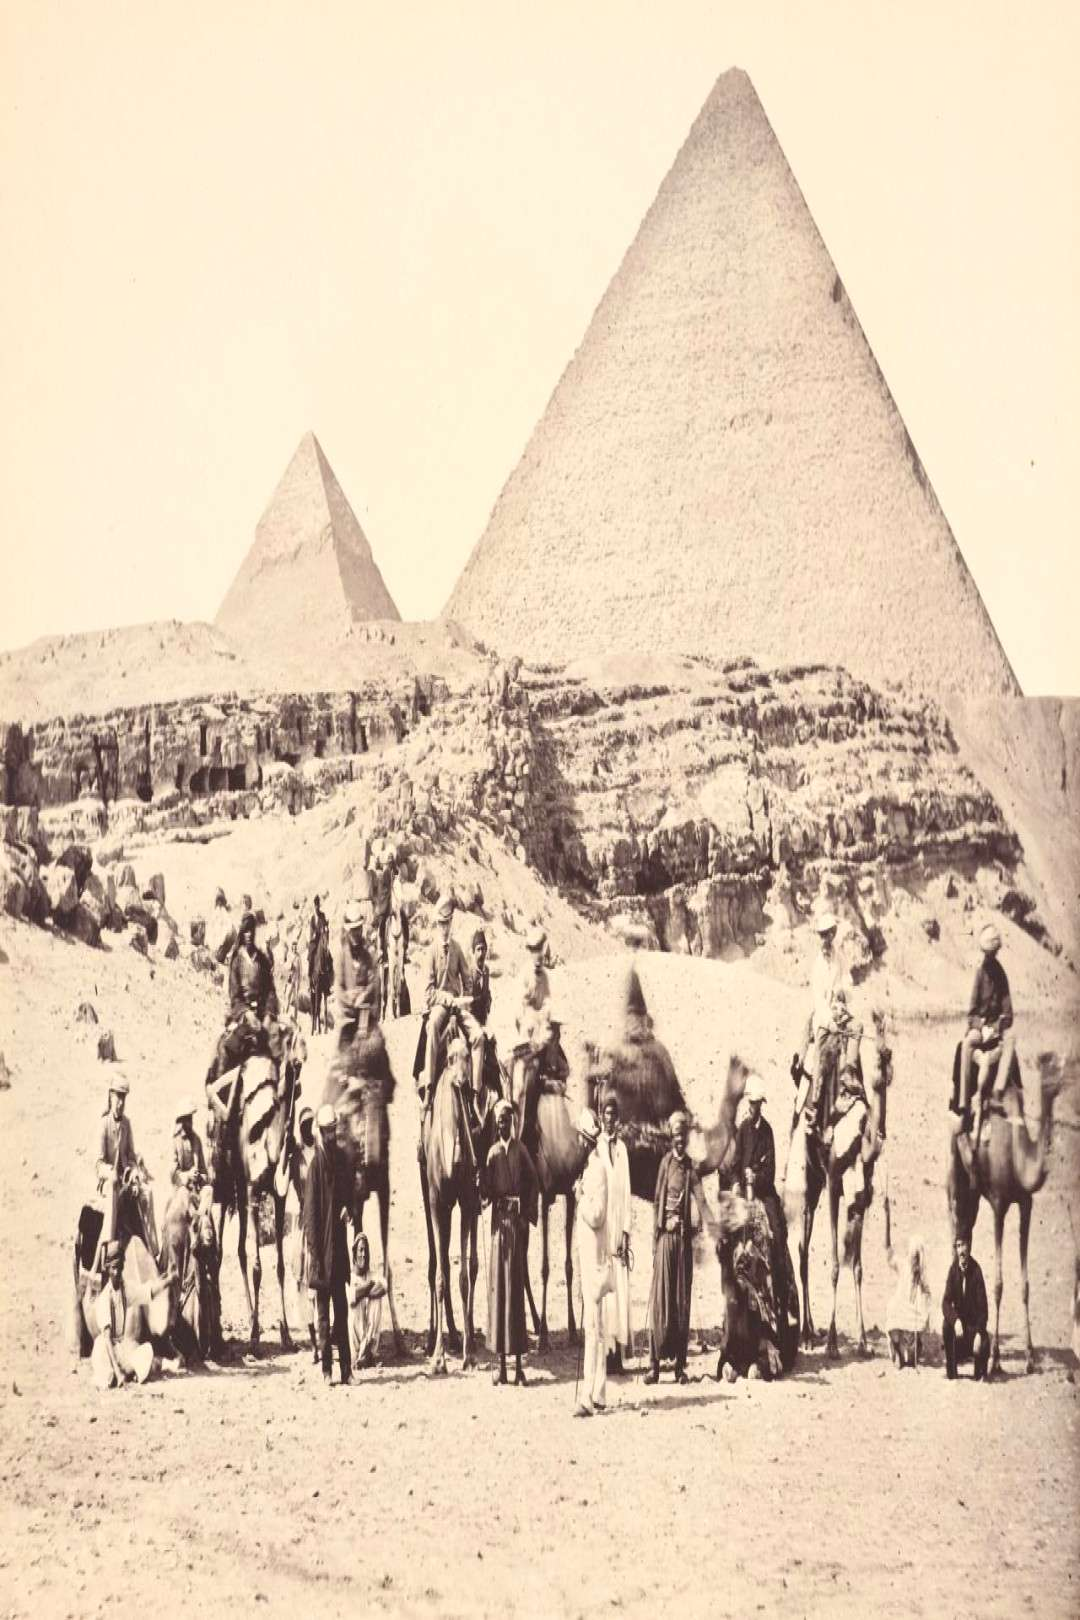 March 5, 1862 The Prince of Wales and his entourage on camels in front of the great pyramids of